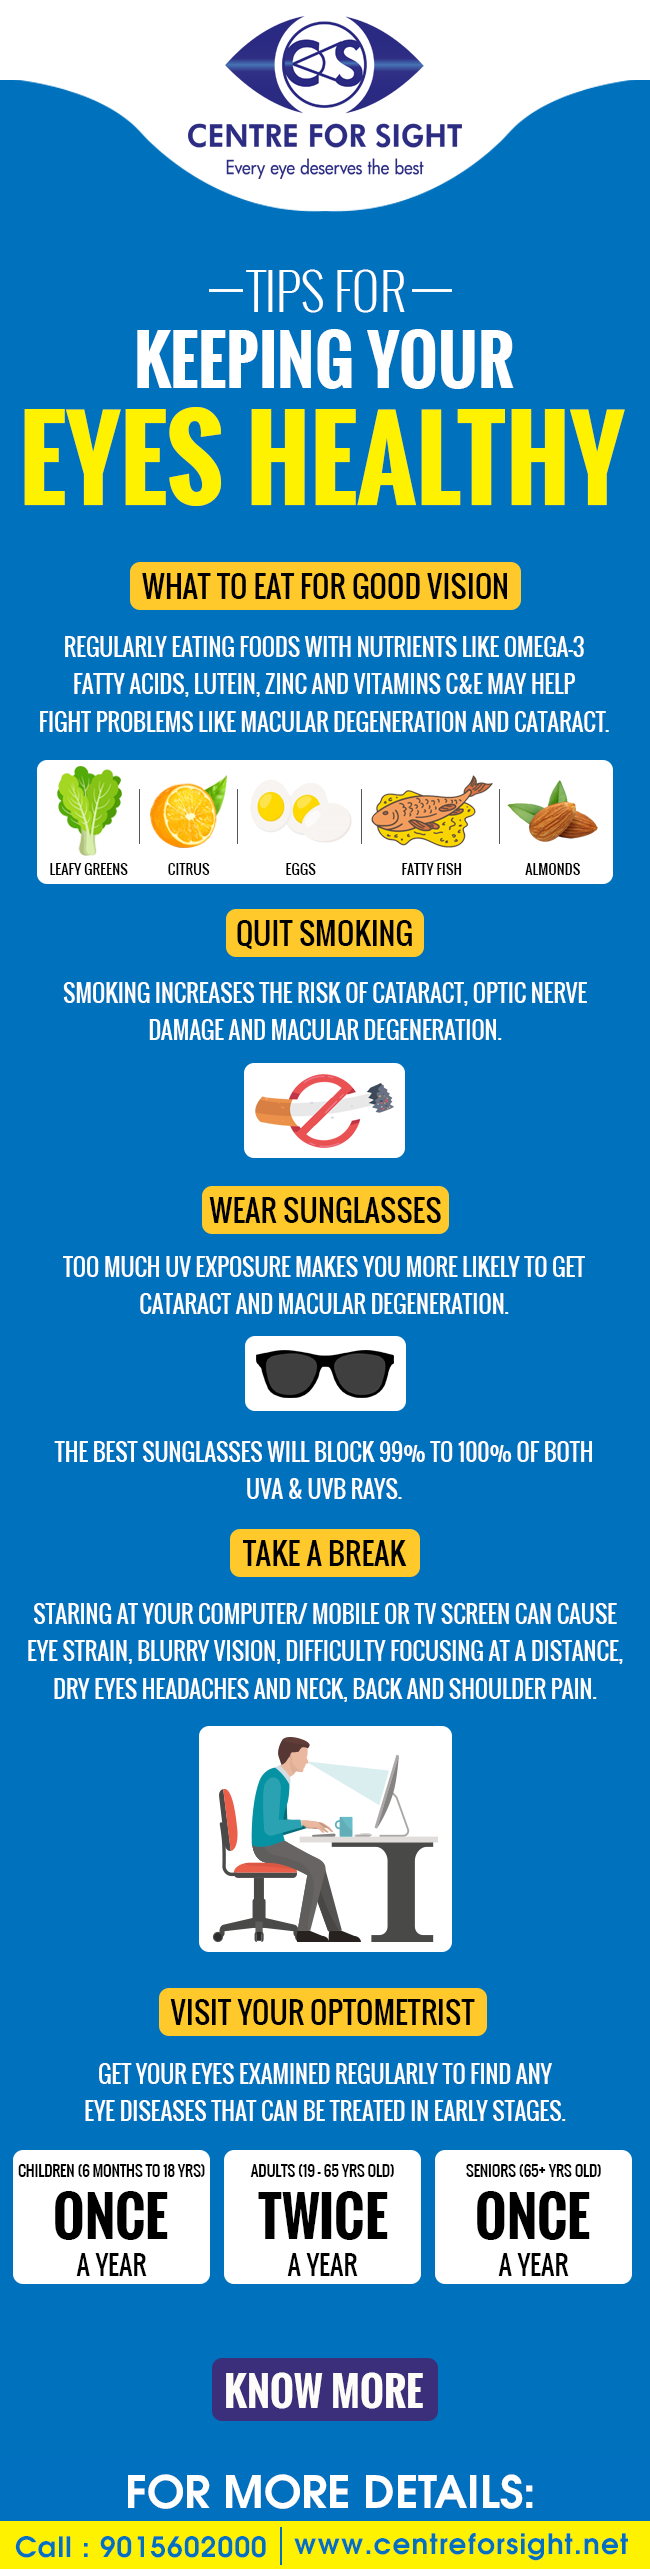 tips-for-keeping-your-eyes-healthy-infographic-plaza